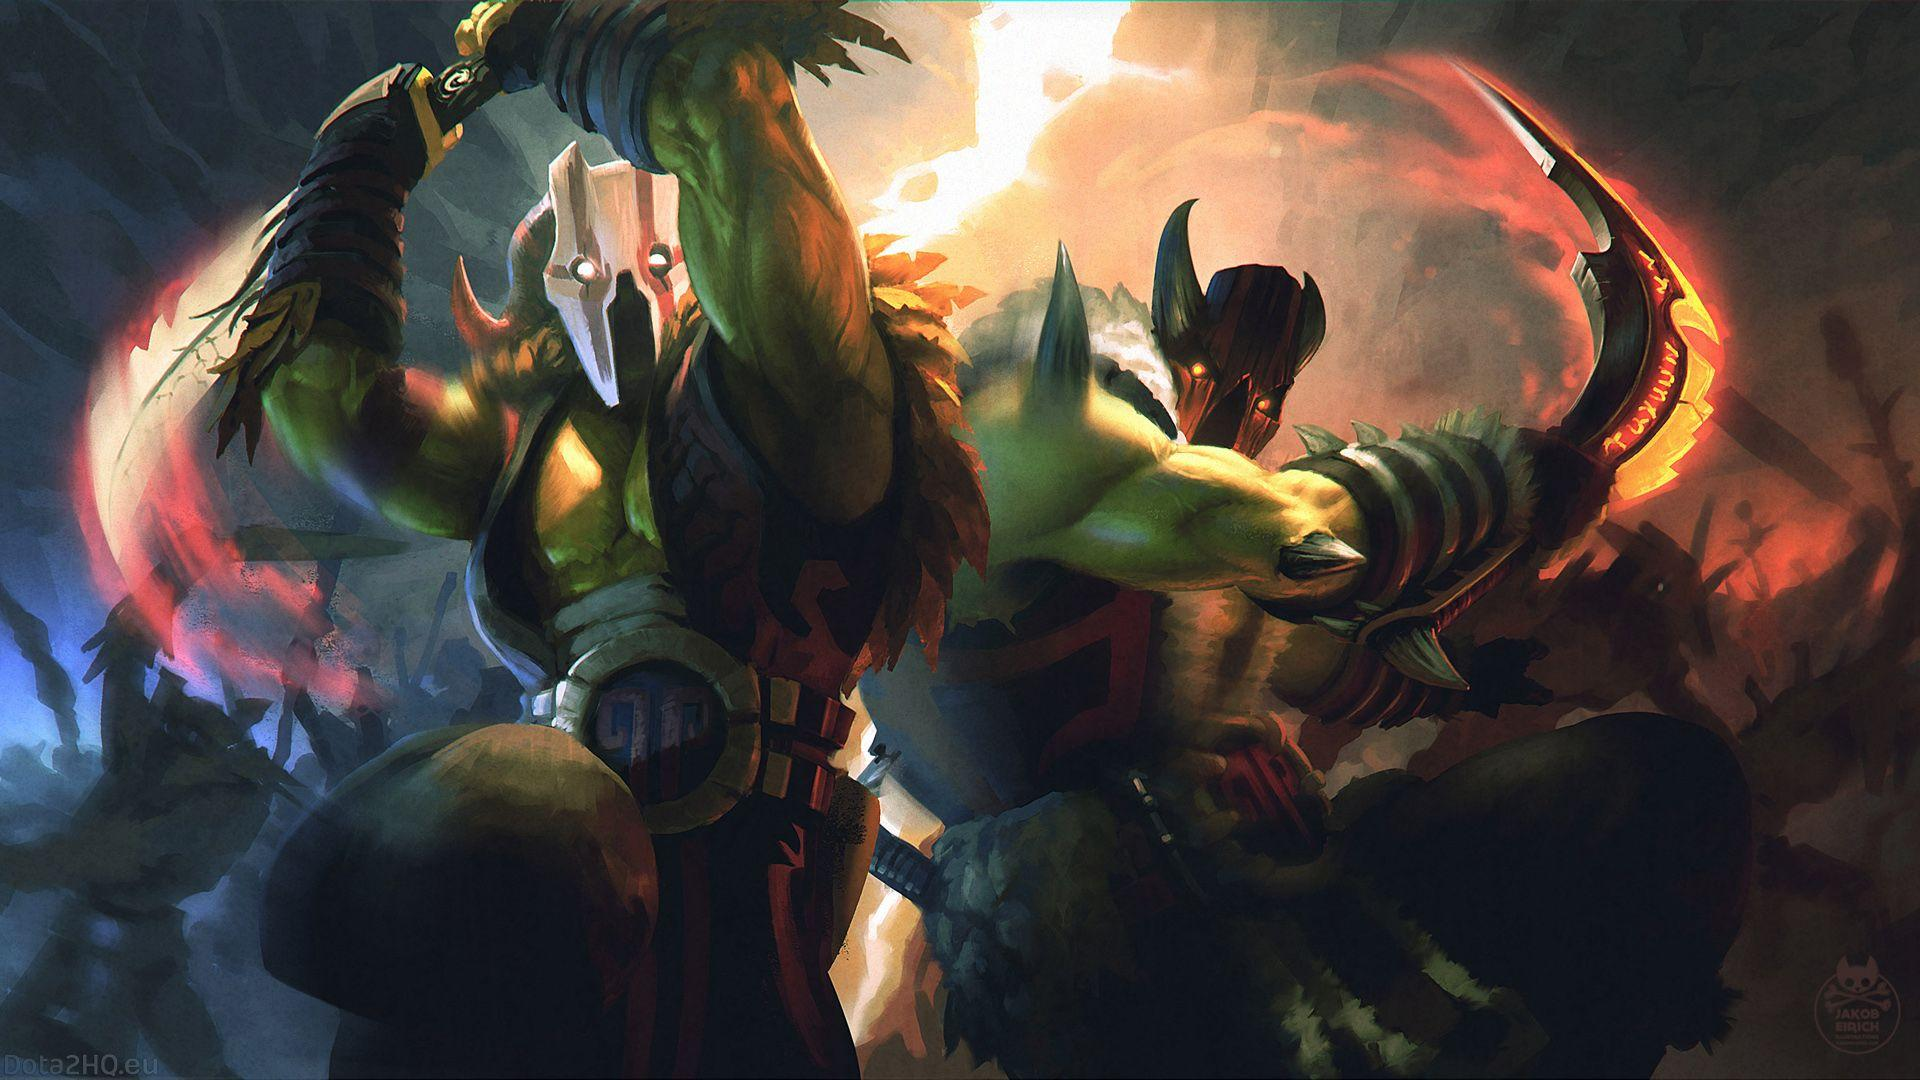 Juggernaut [Dual Nature Loading Screen] - DOTA 2 Wallpapers